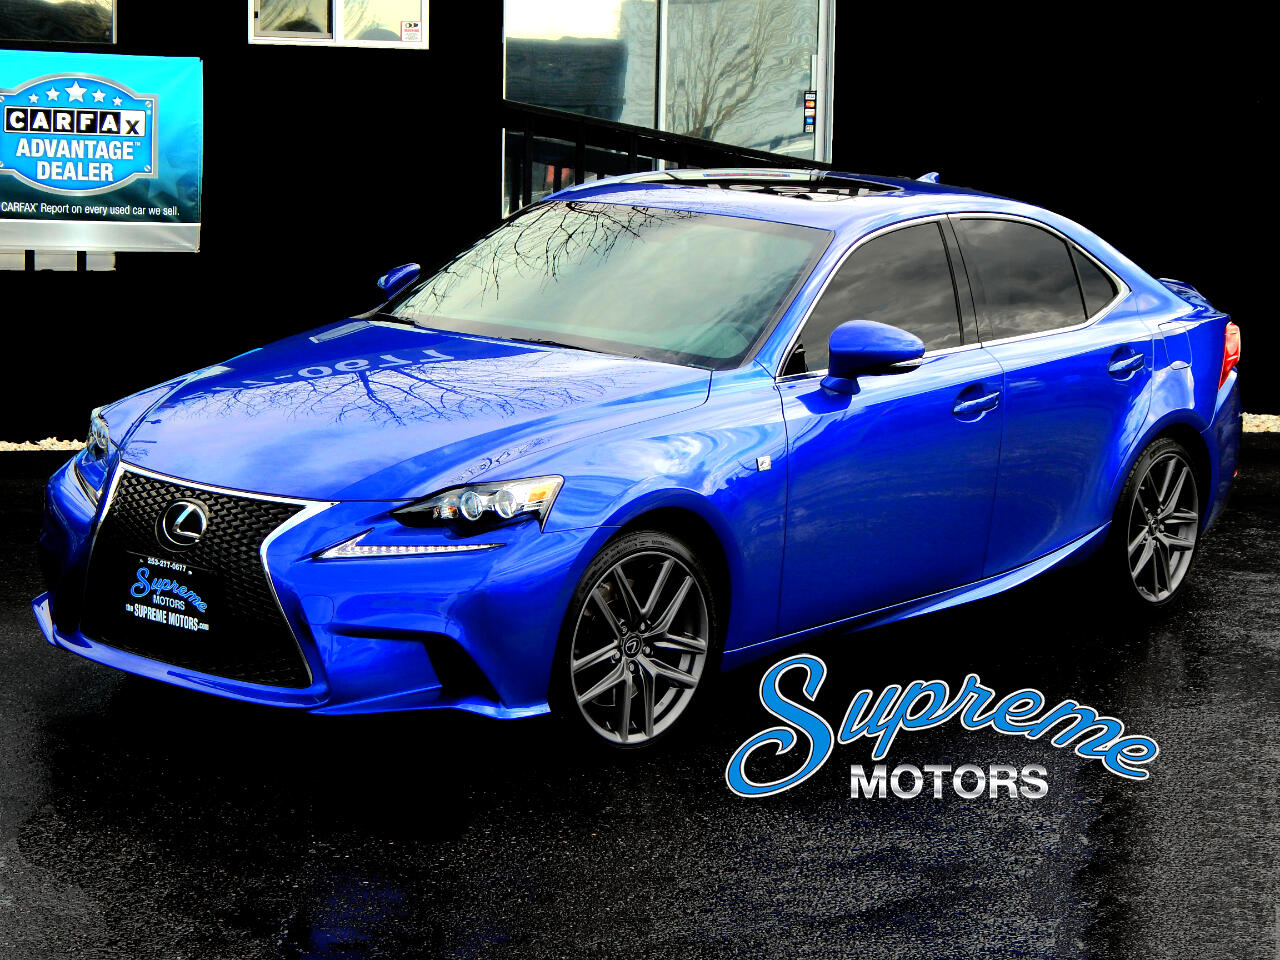 2016 Lexus IS F-Sport, Heated/AC Seats, One Owner, Clean Carfax,